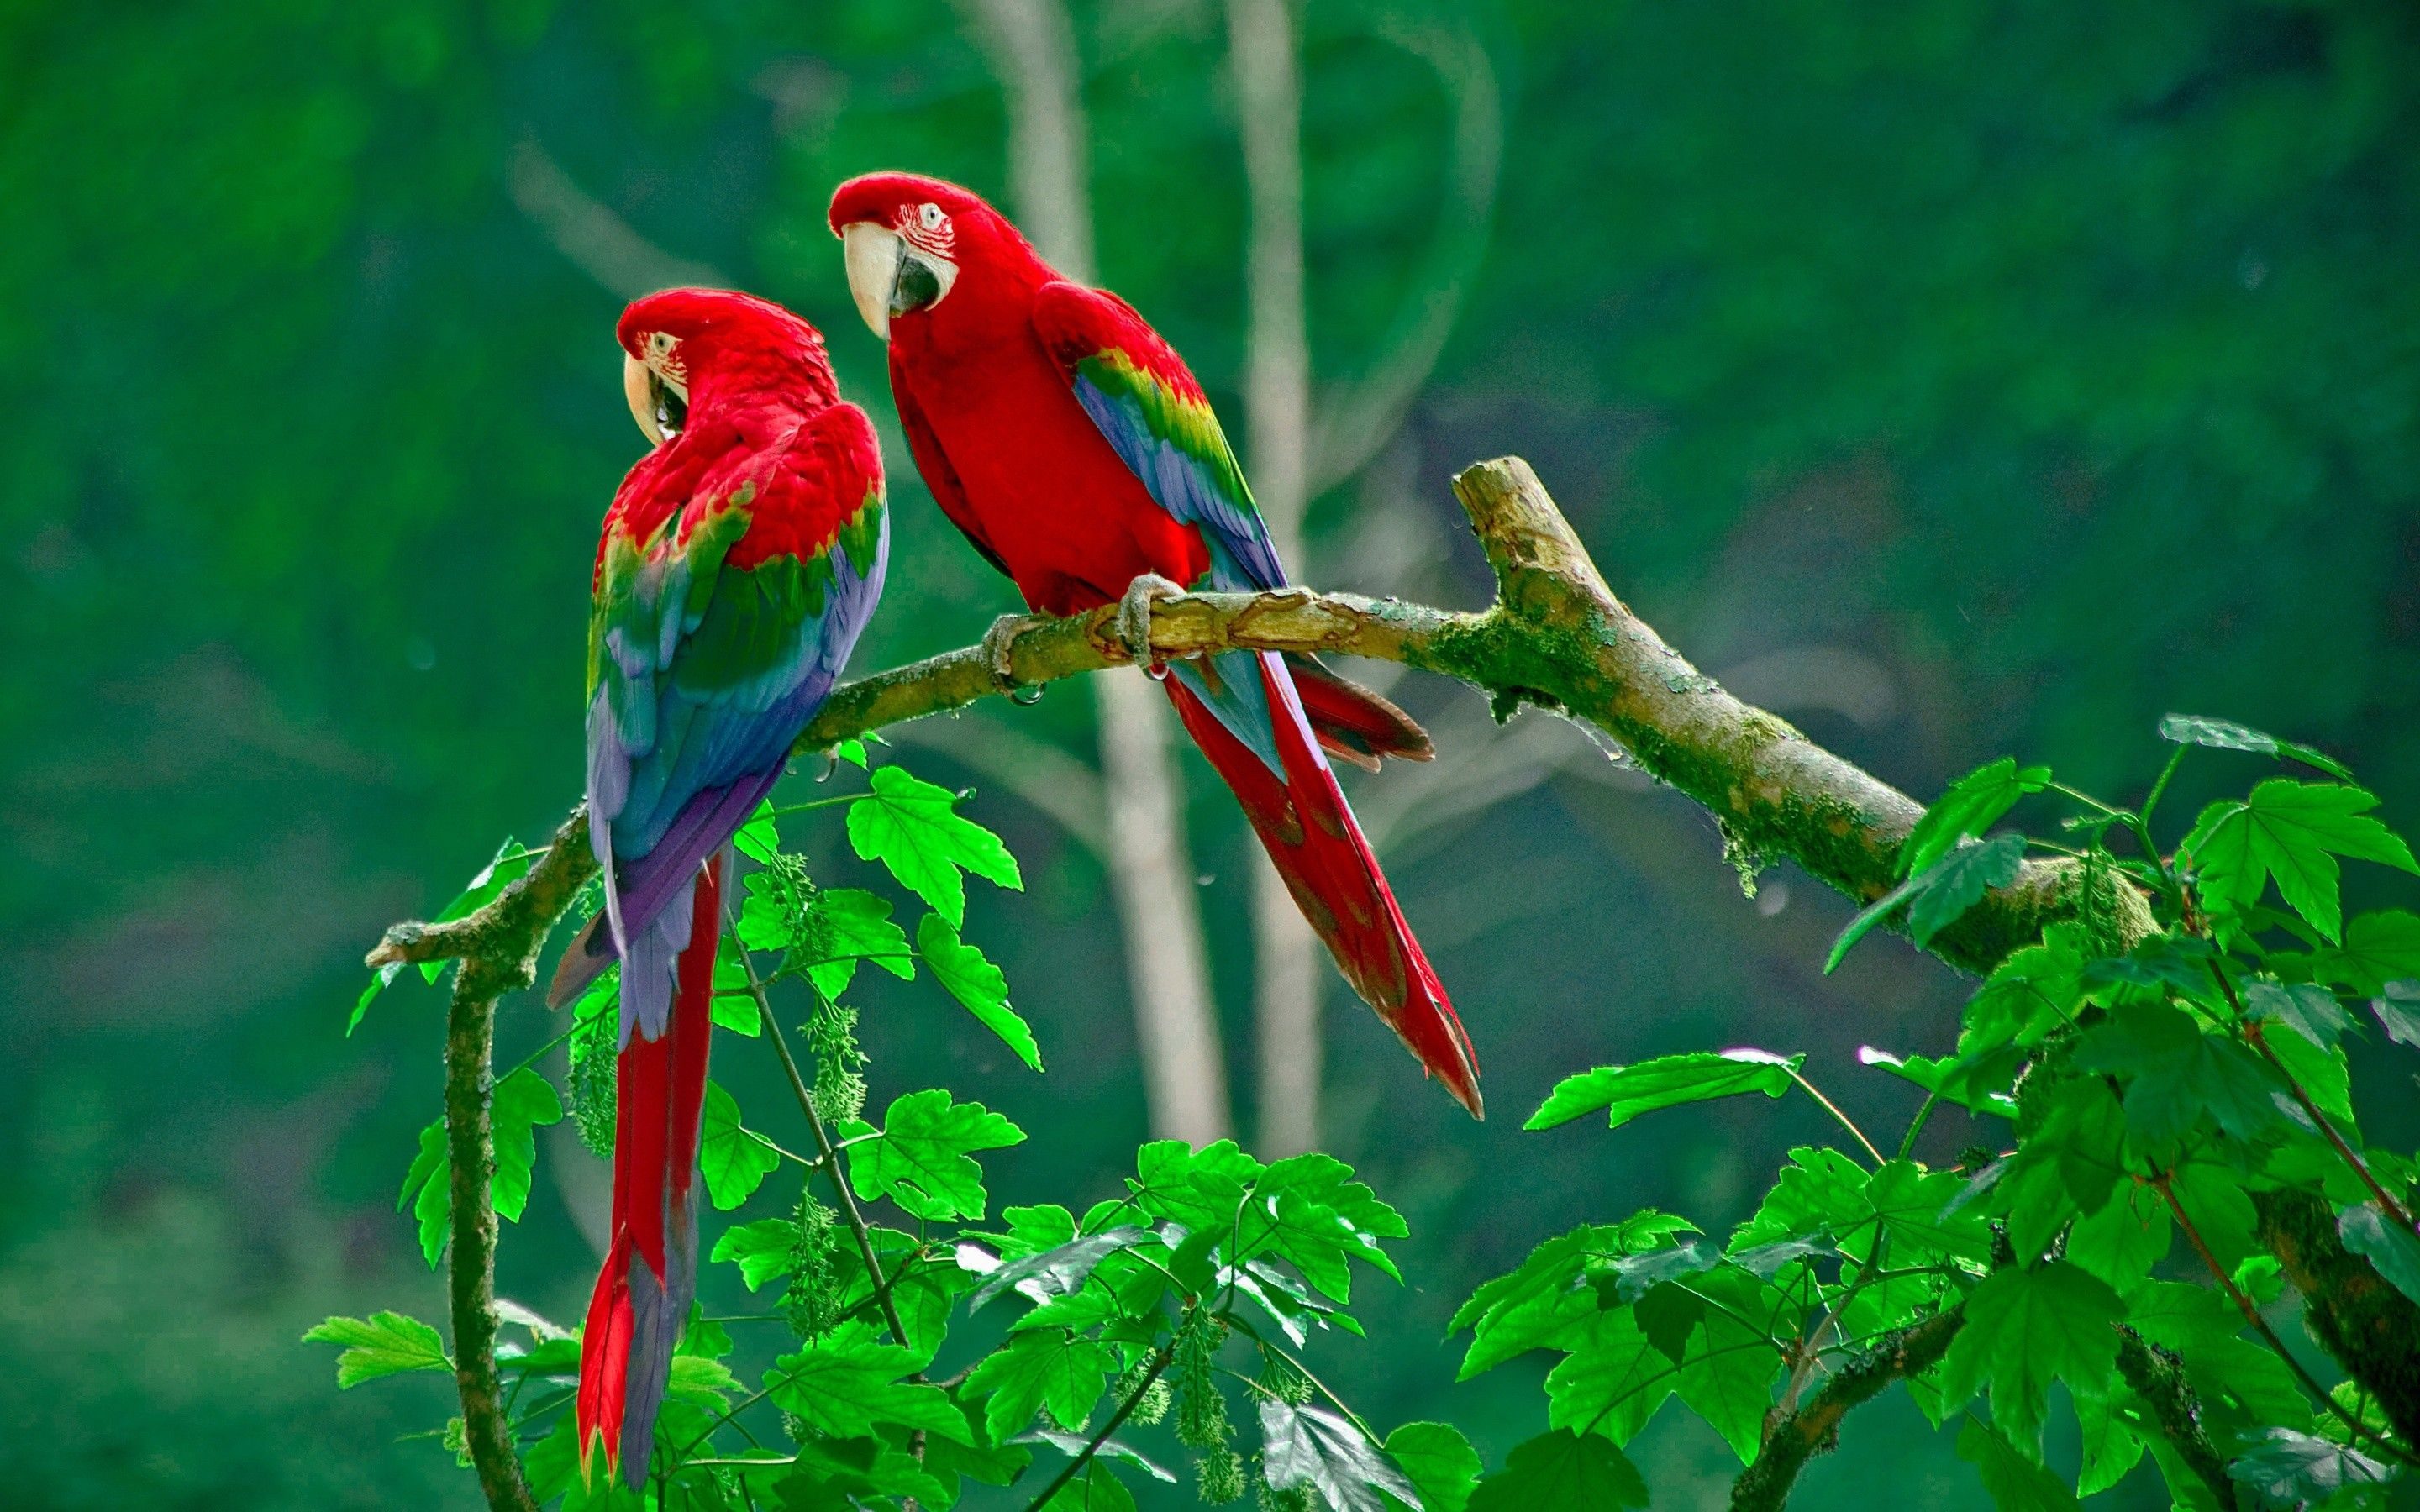 Beautiful Birds Wallpapers Free Download Archives Free Desktop Wallpapers Wallpapers For Free In Hi Beautiful Bird Wallpaper Parrot Wallpaper Bird Wallpaper